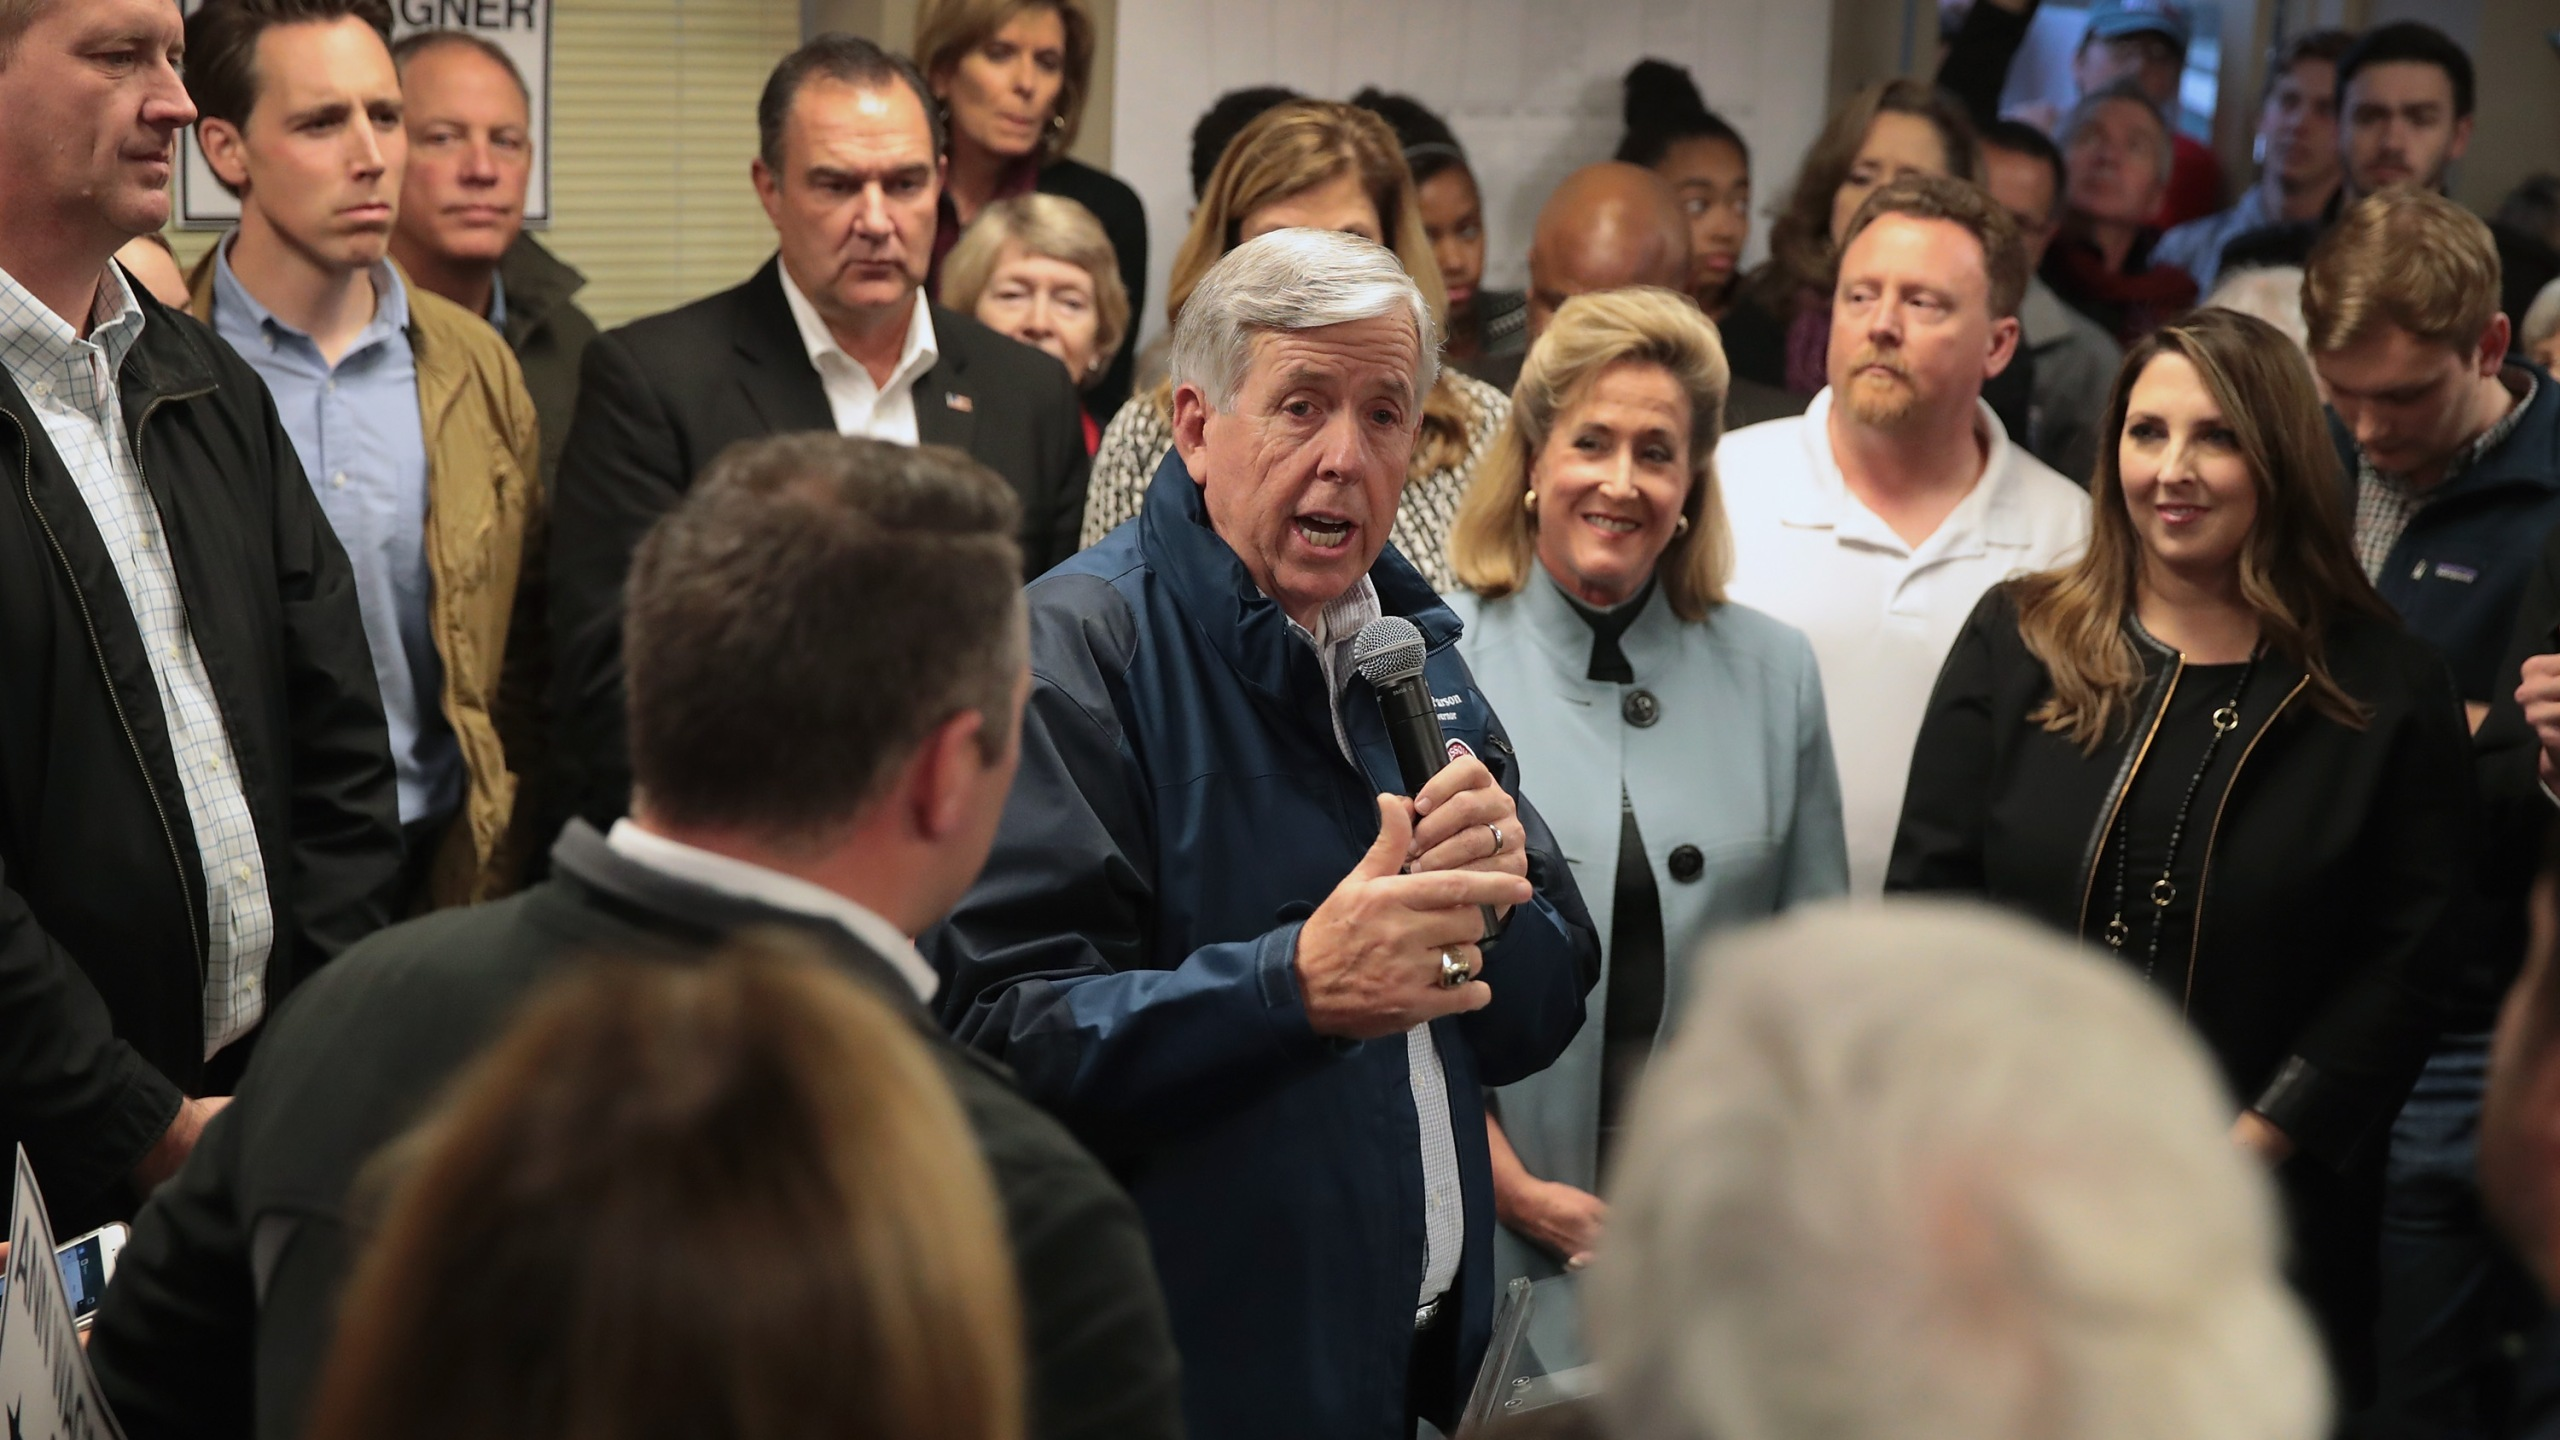 Missouri Governor Mike Parson speaks in support of Republican U.S. Senate candidate Josh Hawley (2nd from L) during a campaign rally at the MOGOP field Office on November 5, 2018 in St. Louis, Missouri. (Credit: Scott Olson/Getty Images)